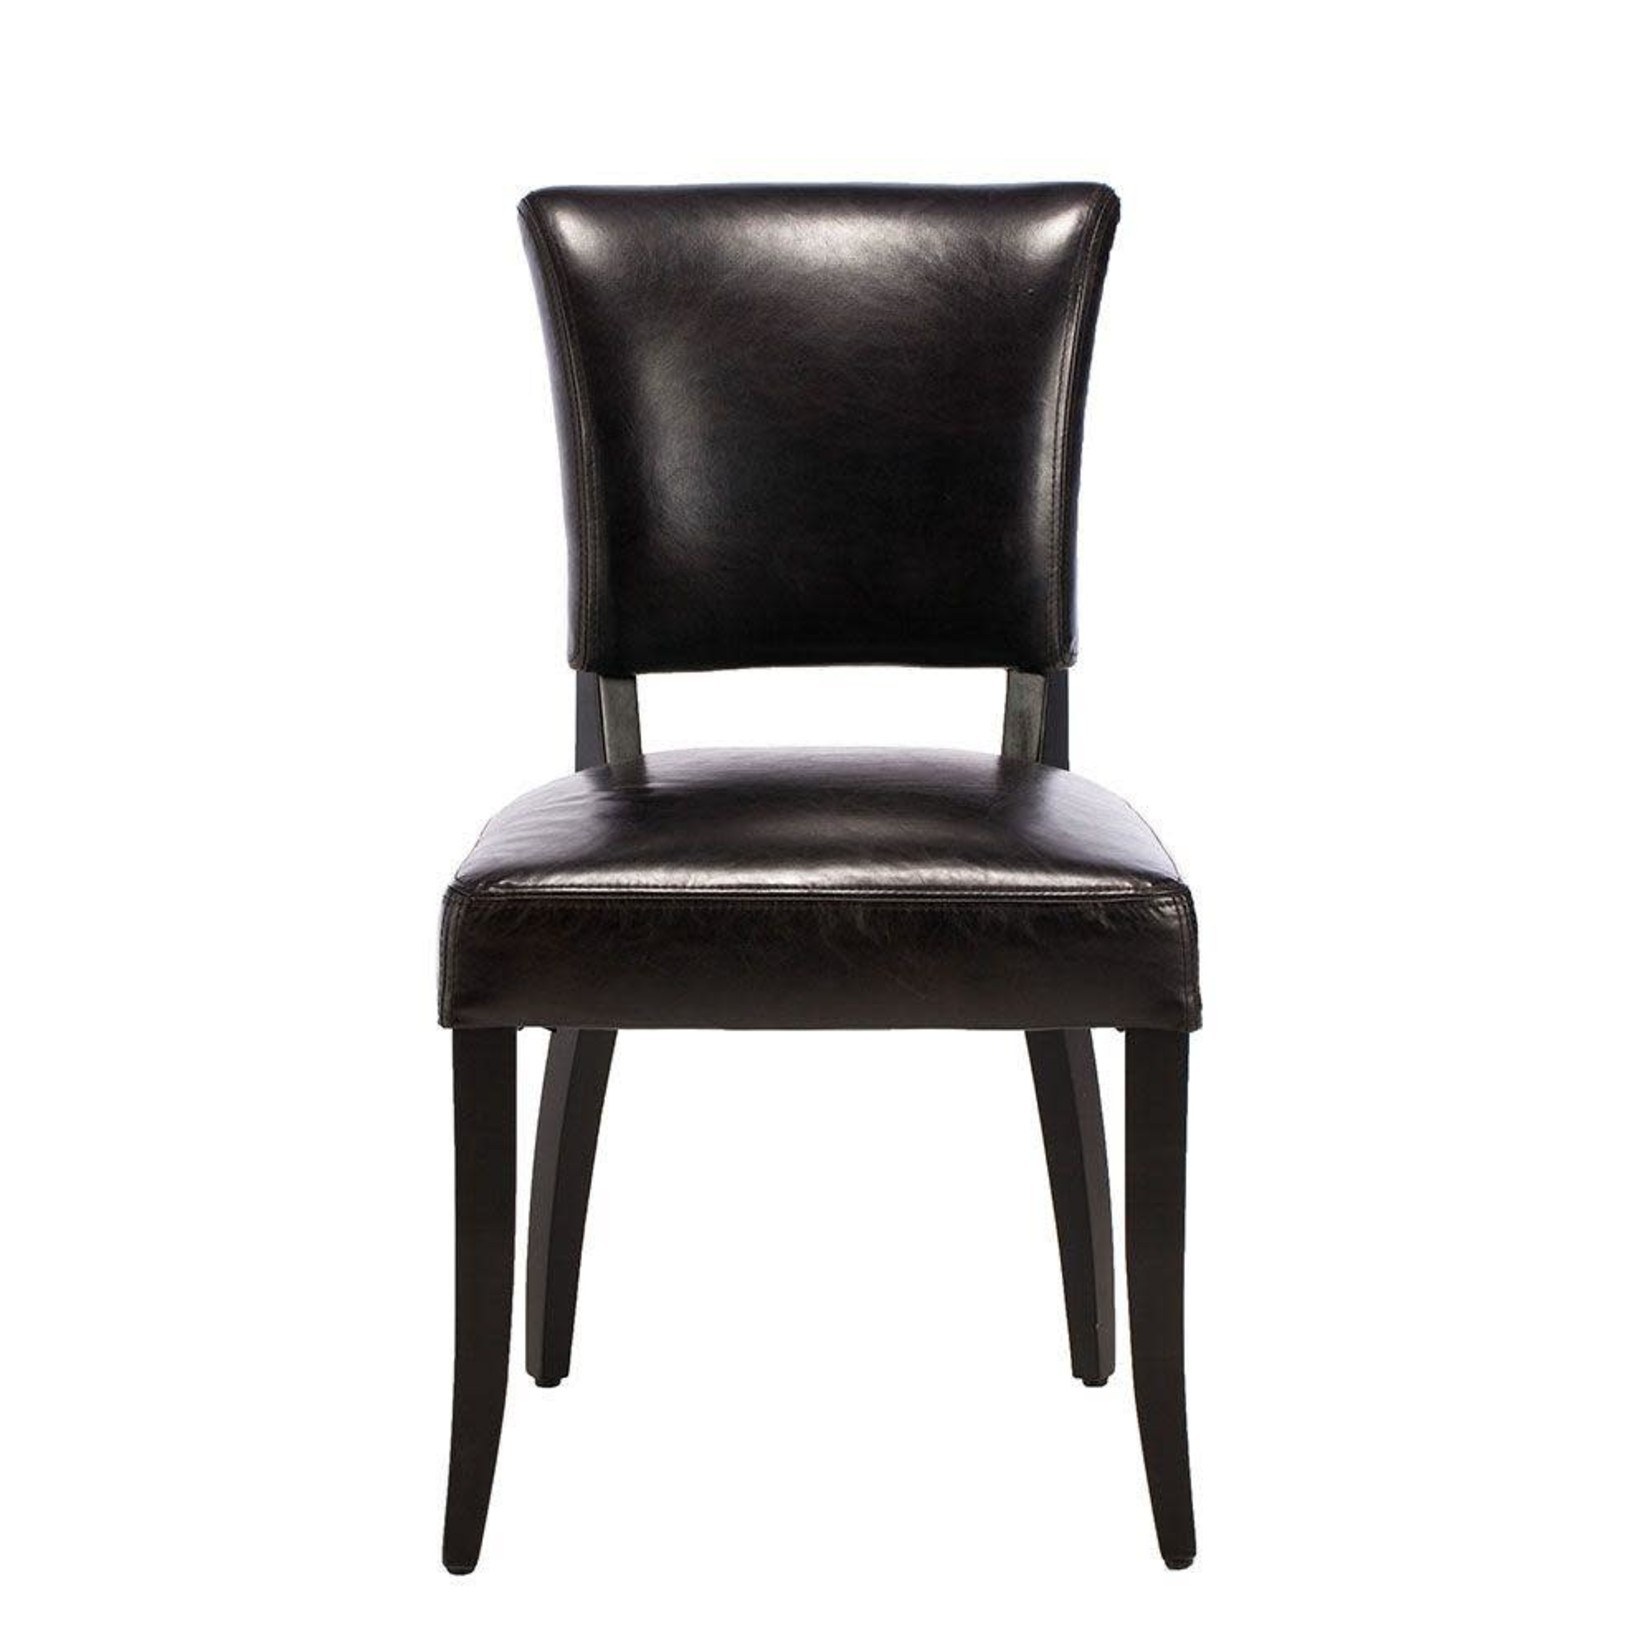 TIMOTHY OULTON MIMI DINING CHAIR OLD SADDLE BLACK & BLACK